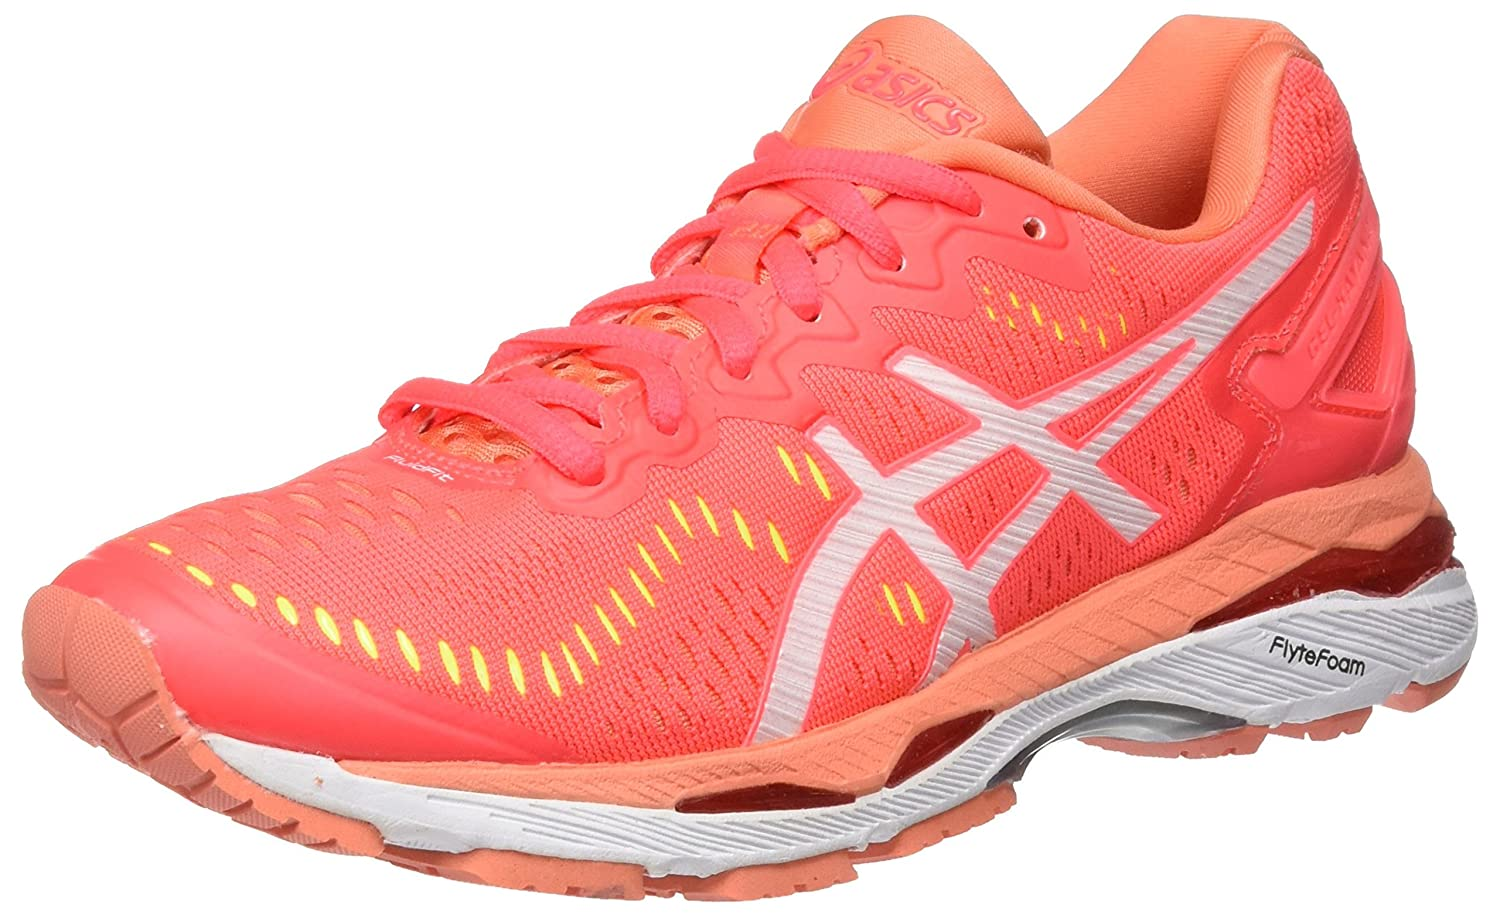 997ac8b3ab03 Asics Gel-Kayano 23 Women s Running Shoes  Amazon.co.uk  Shoes   Bags